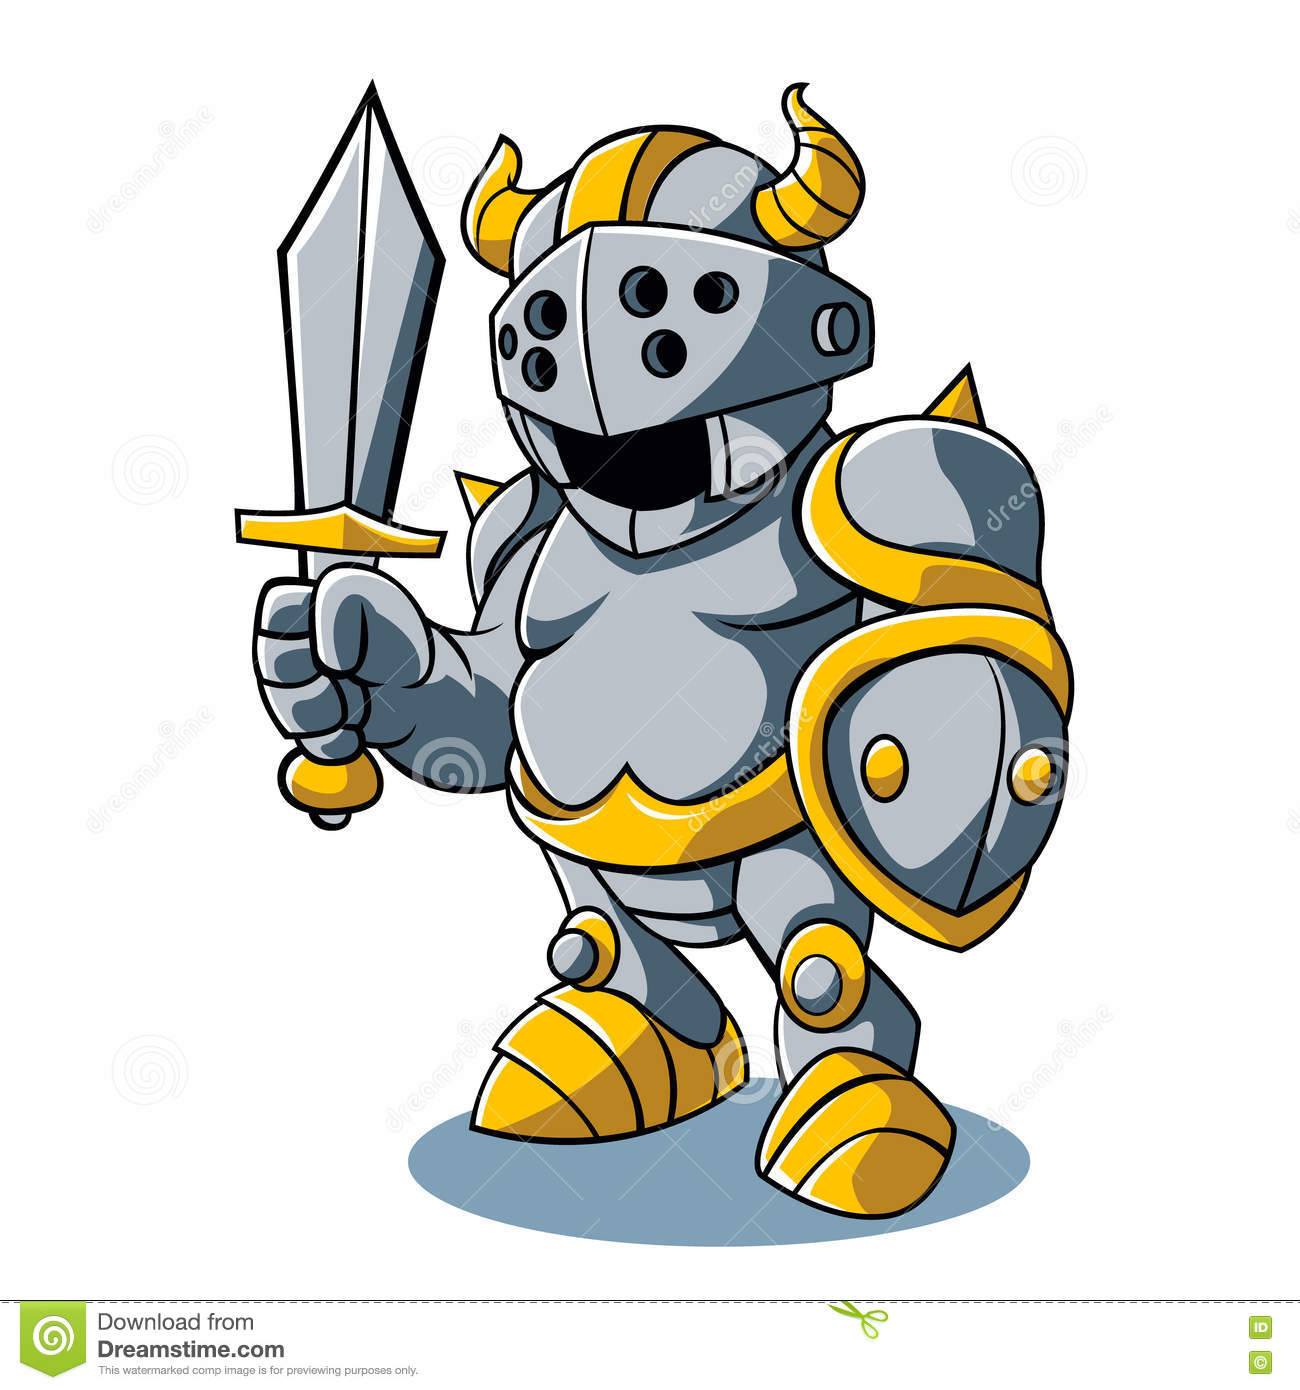 Cartoon knight with swords shield helmet army uniform